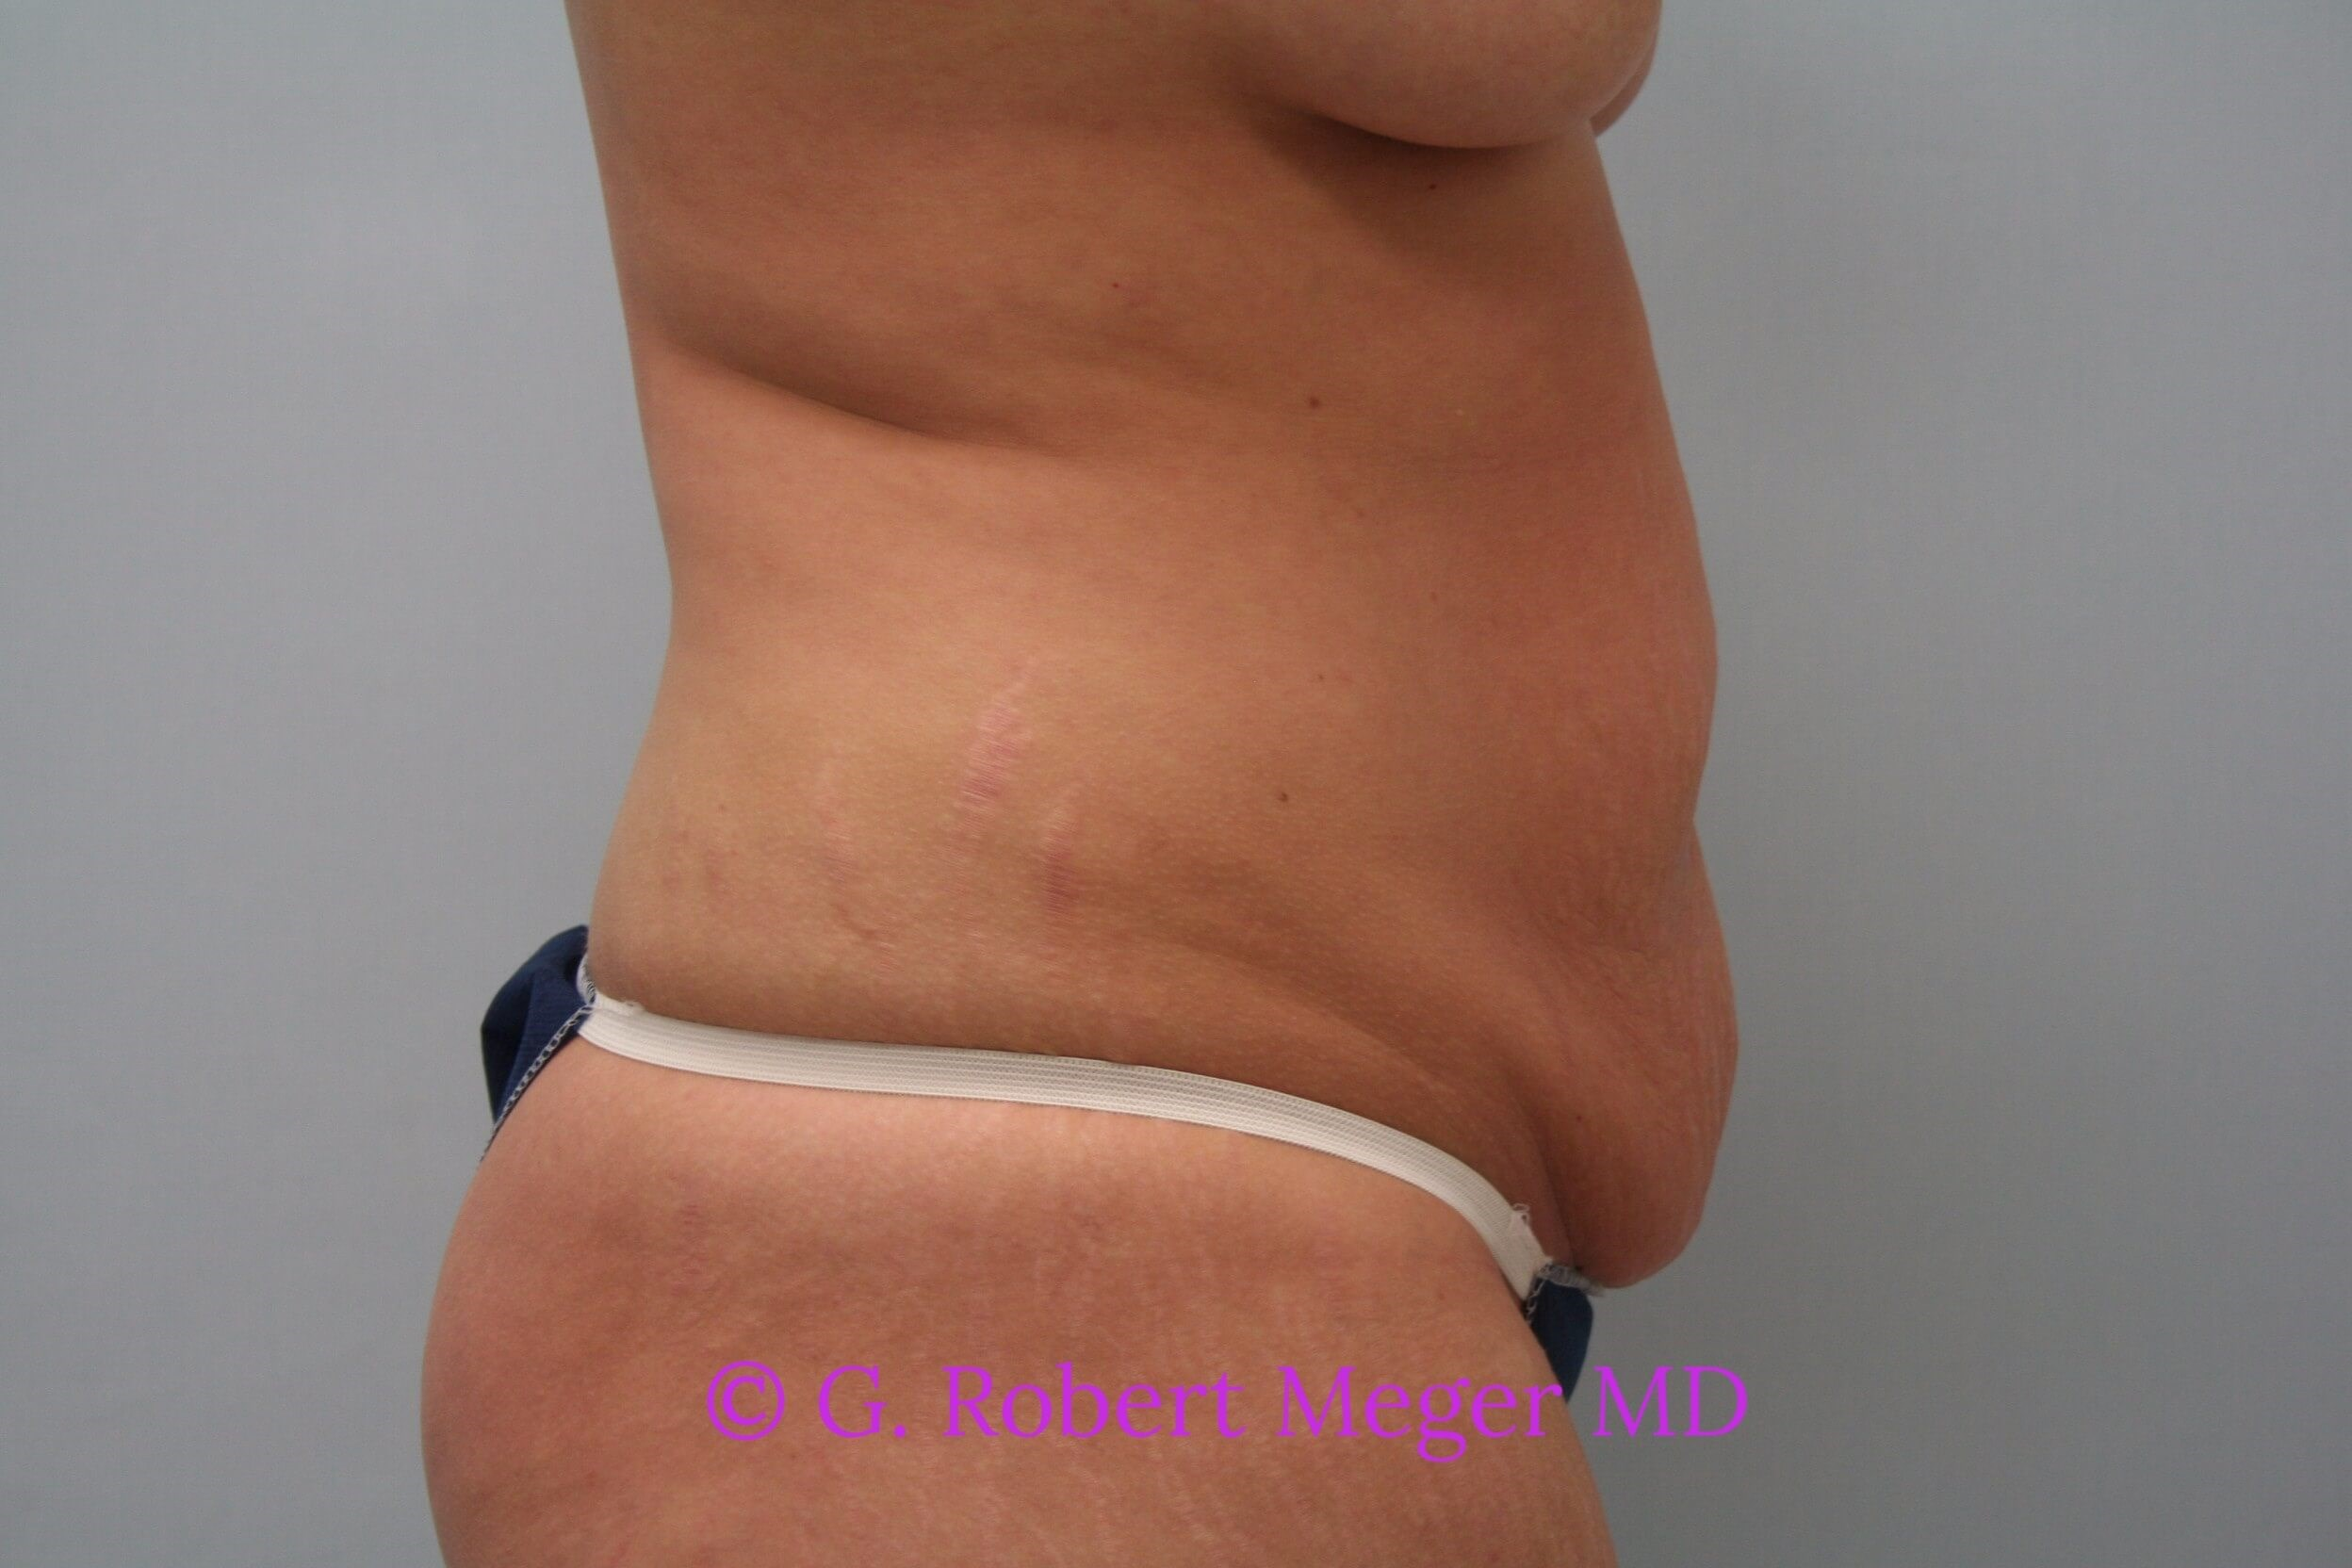 Tummy Tuck Side View Before